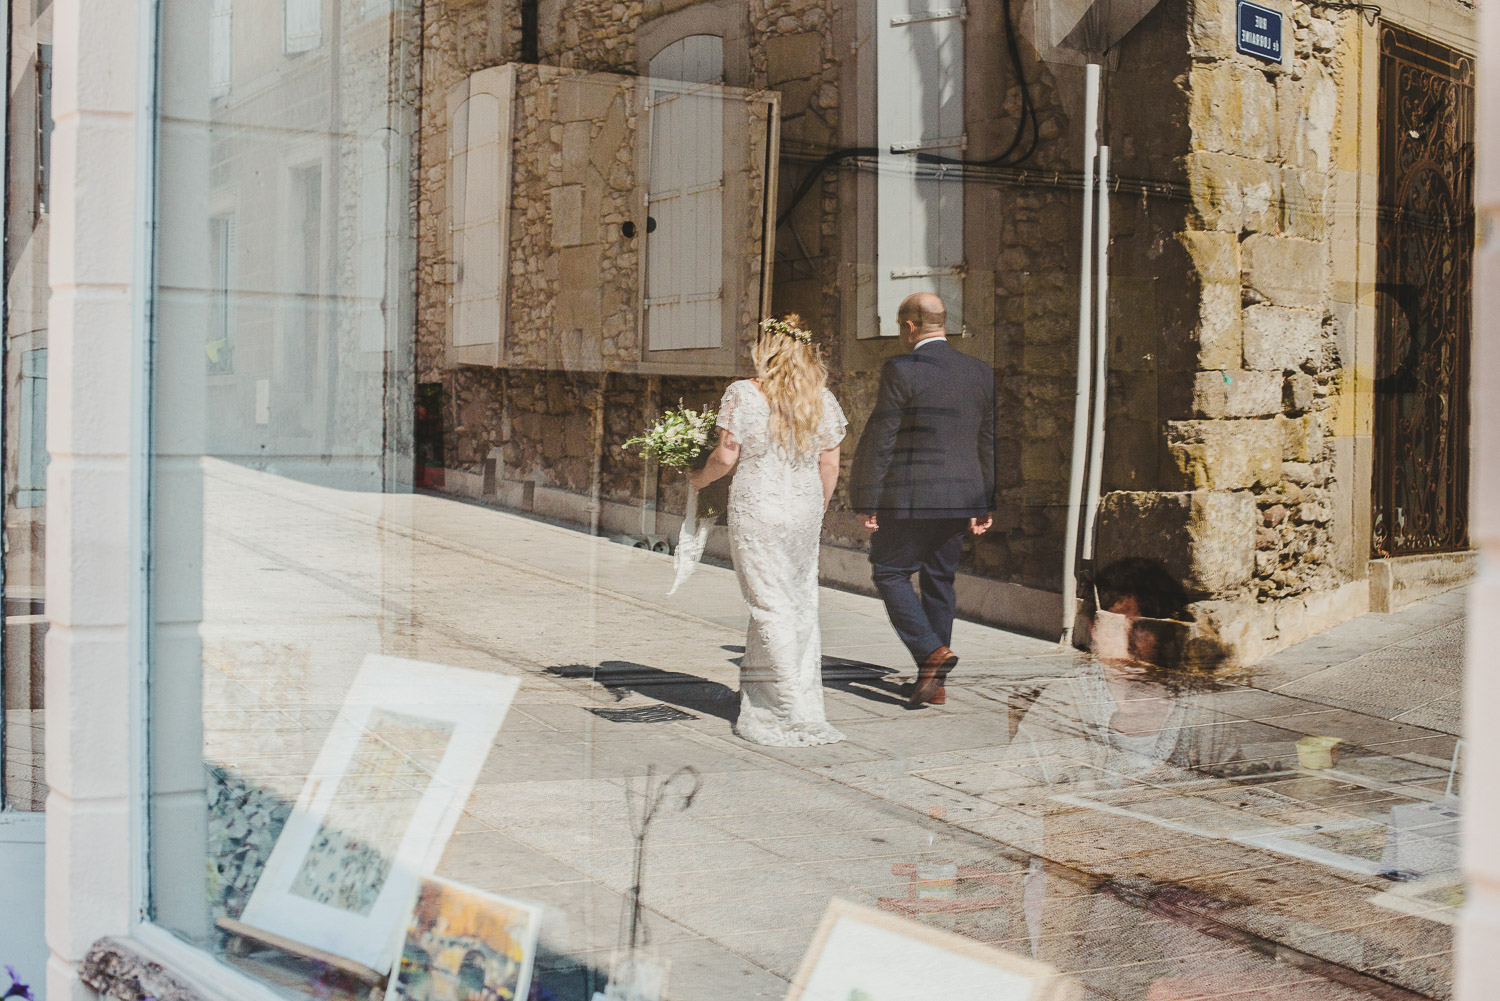 chateau_canet_carcassonne_wedding_katy_webb_photography_france_UK142